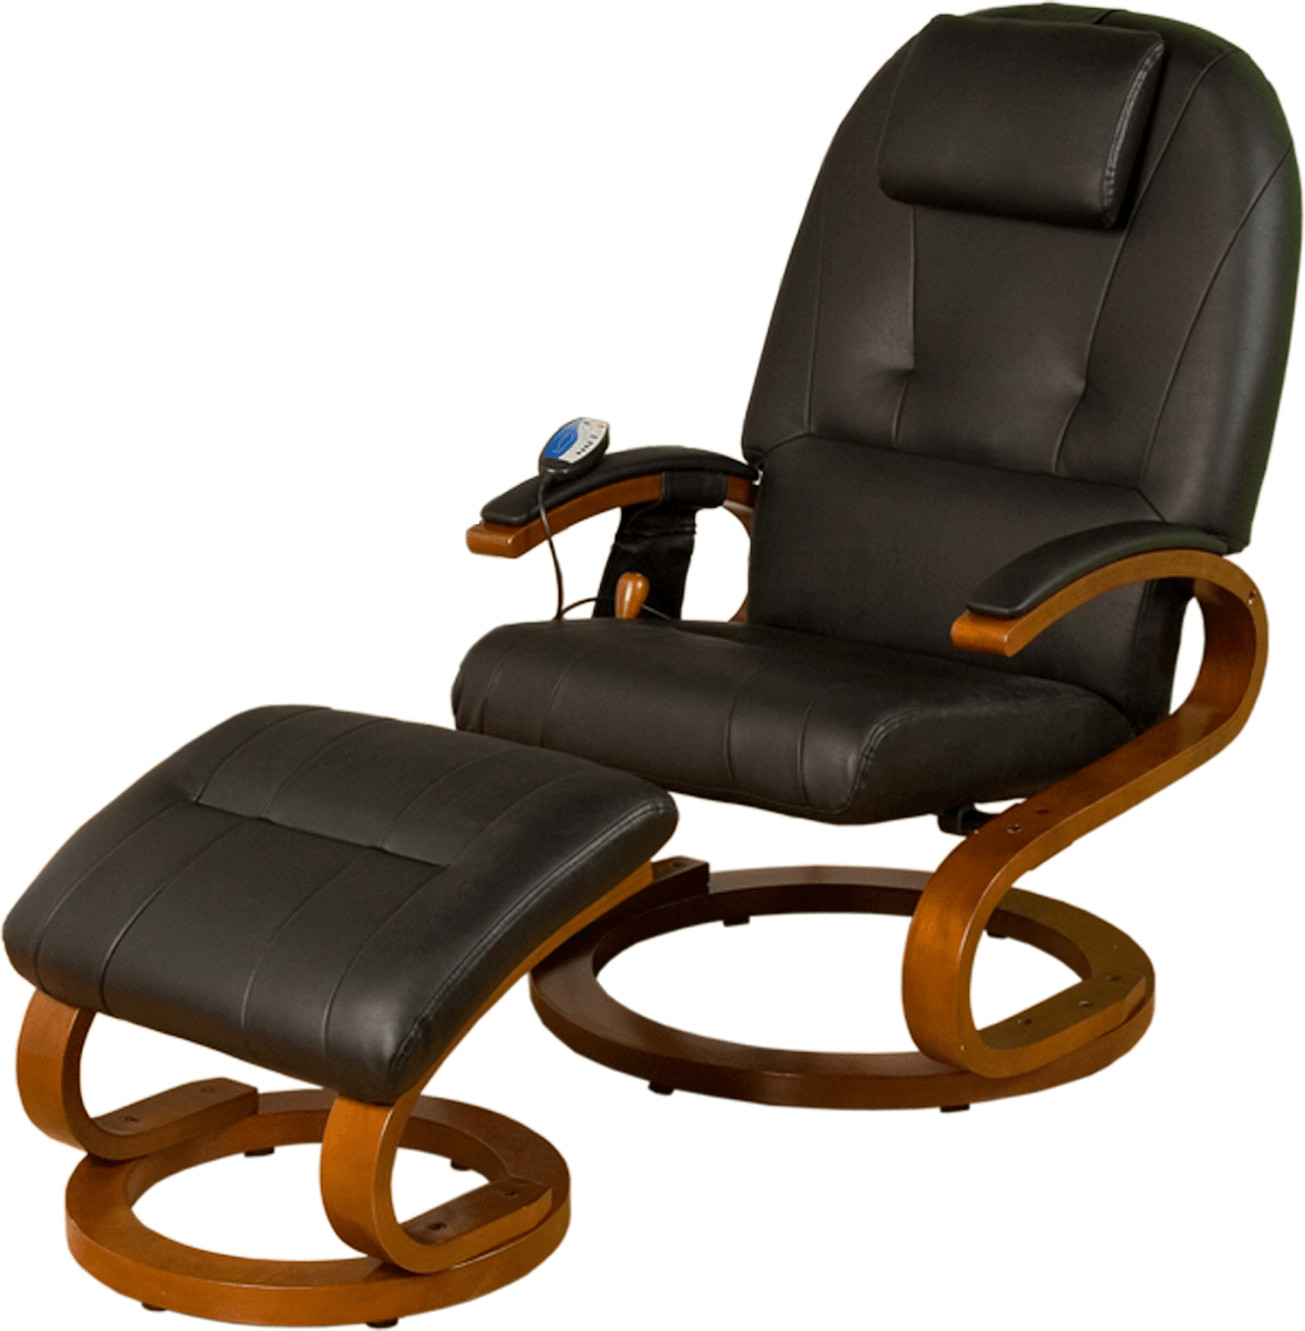 Stilista S-Design Massagesessel